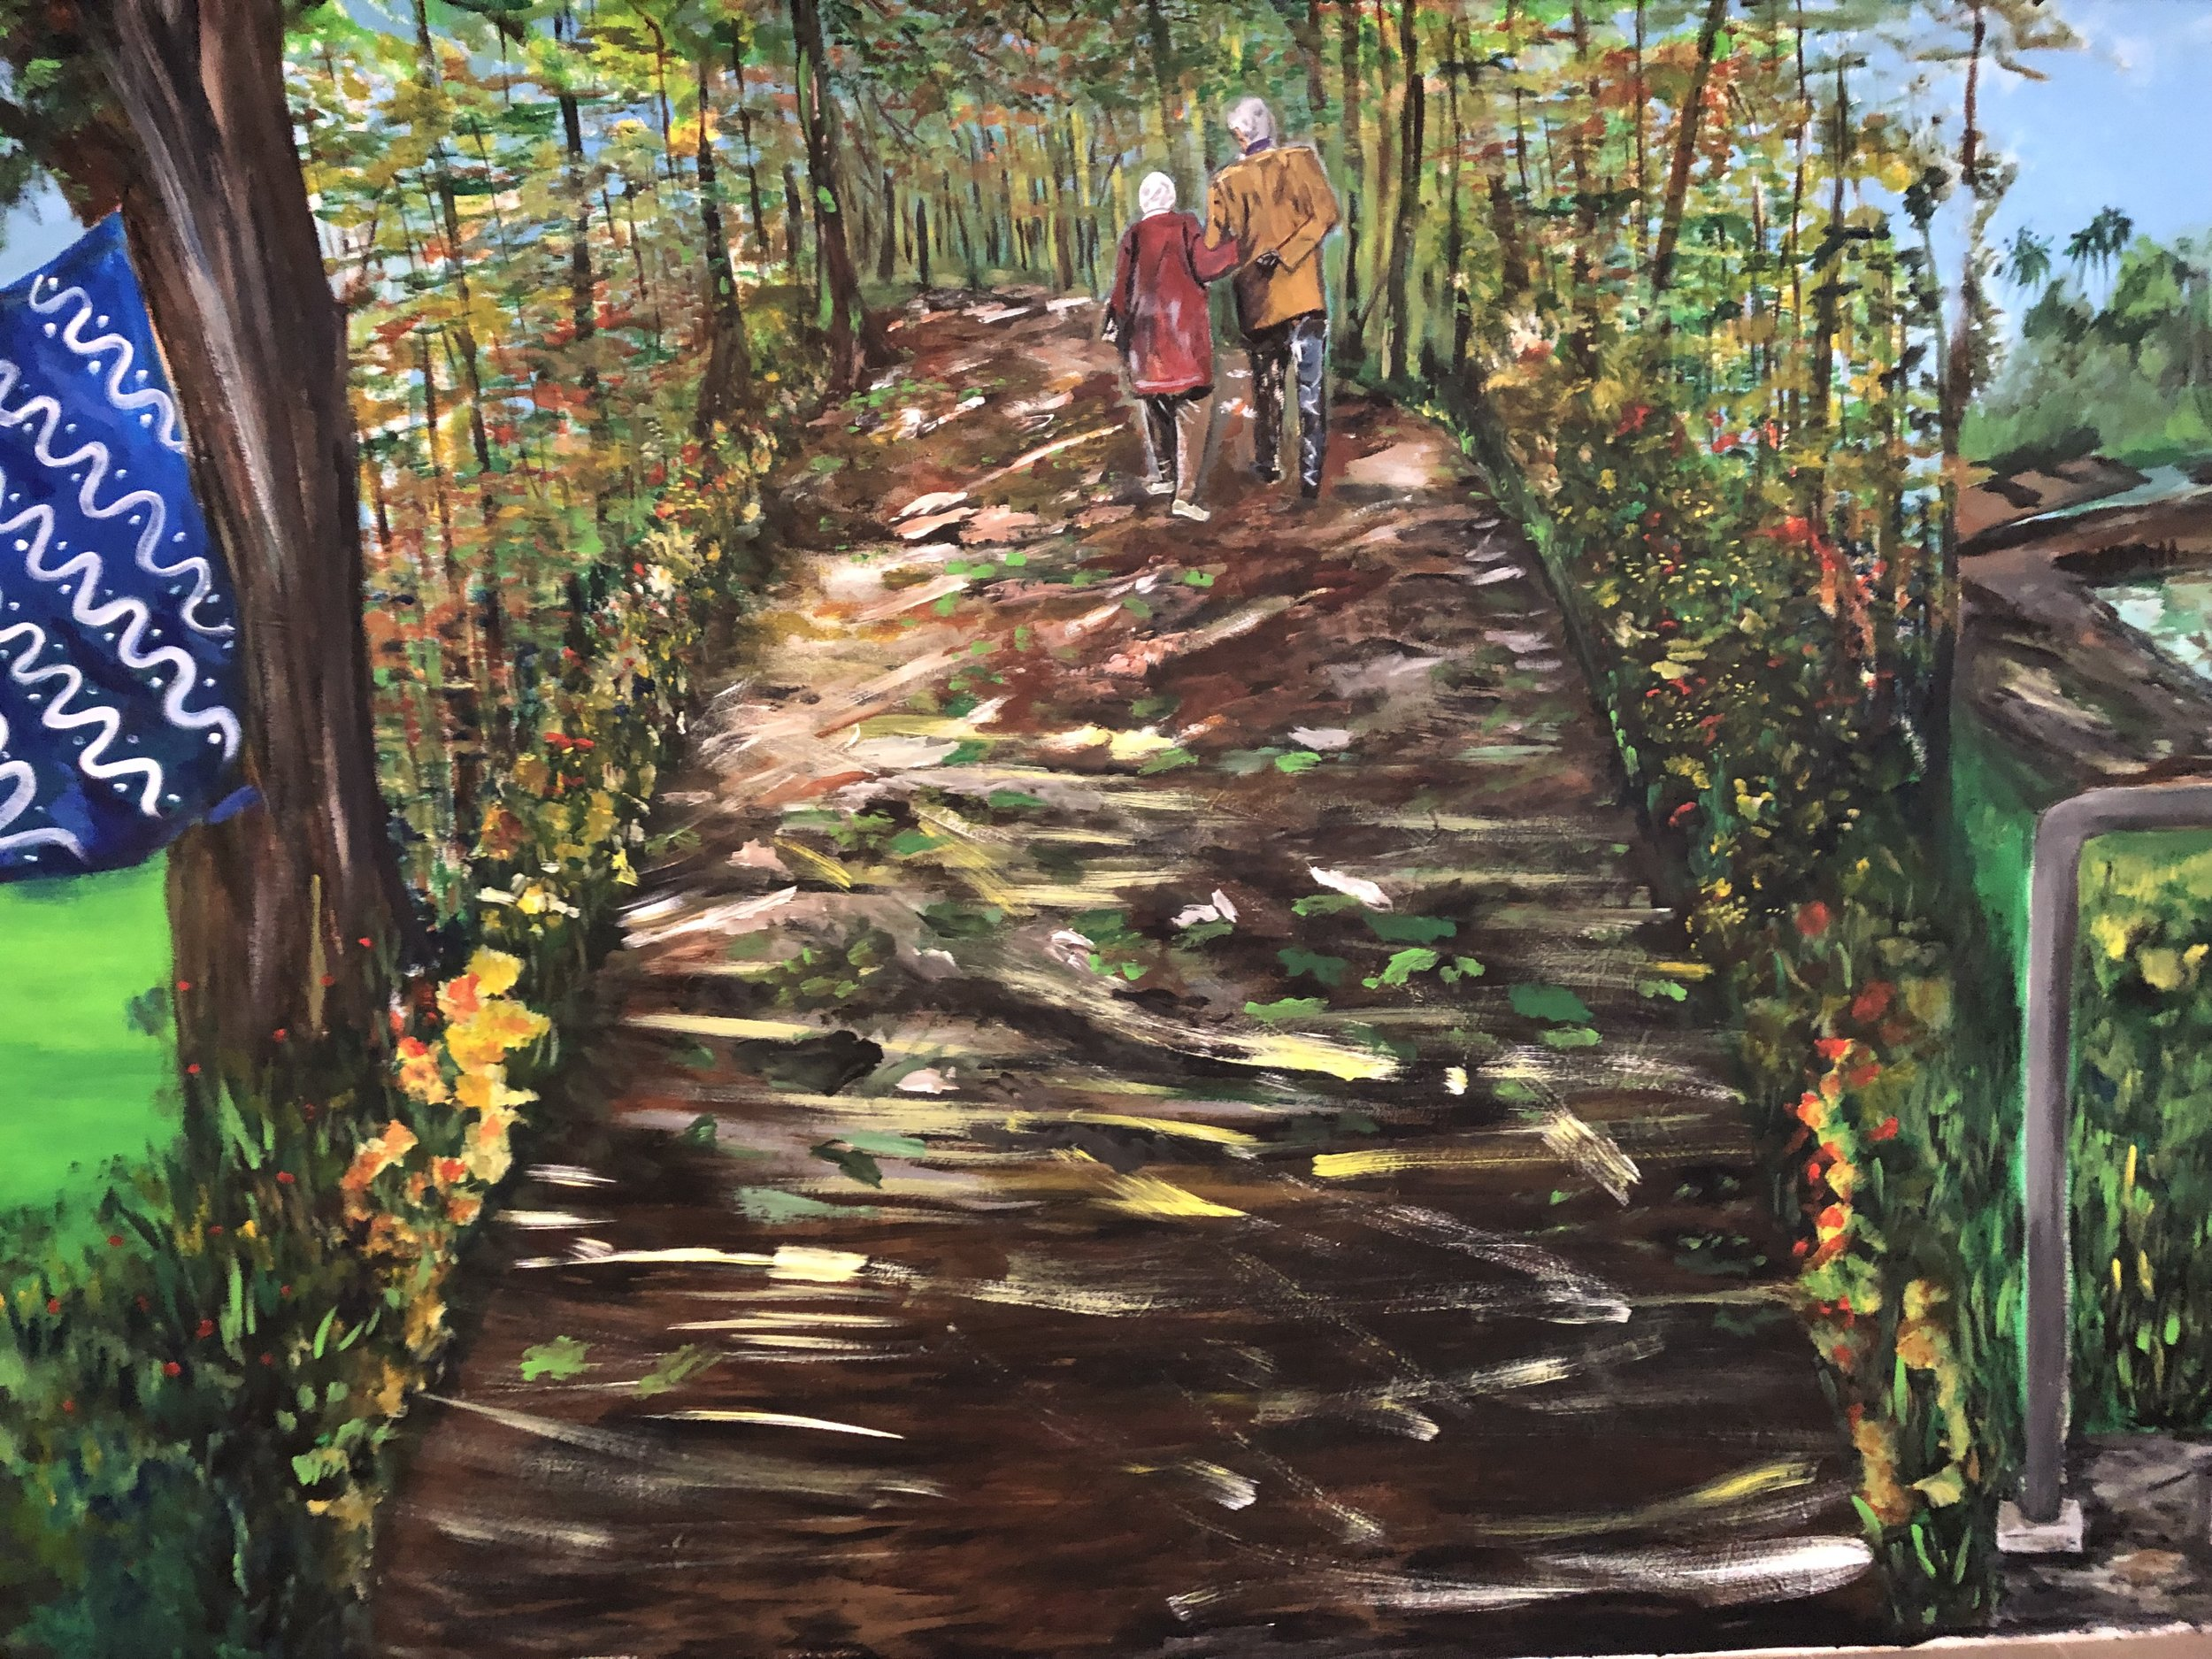 The images flow on to the next showing a loving couple walking together in their autumn years.